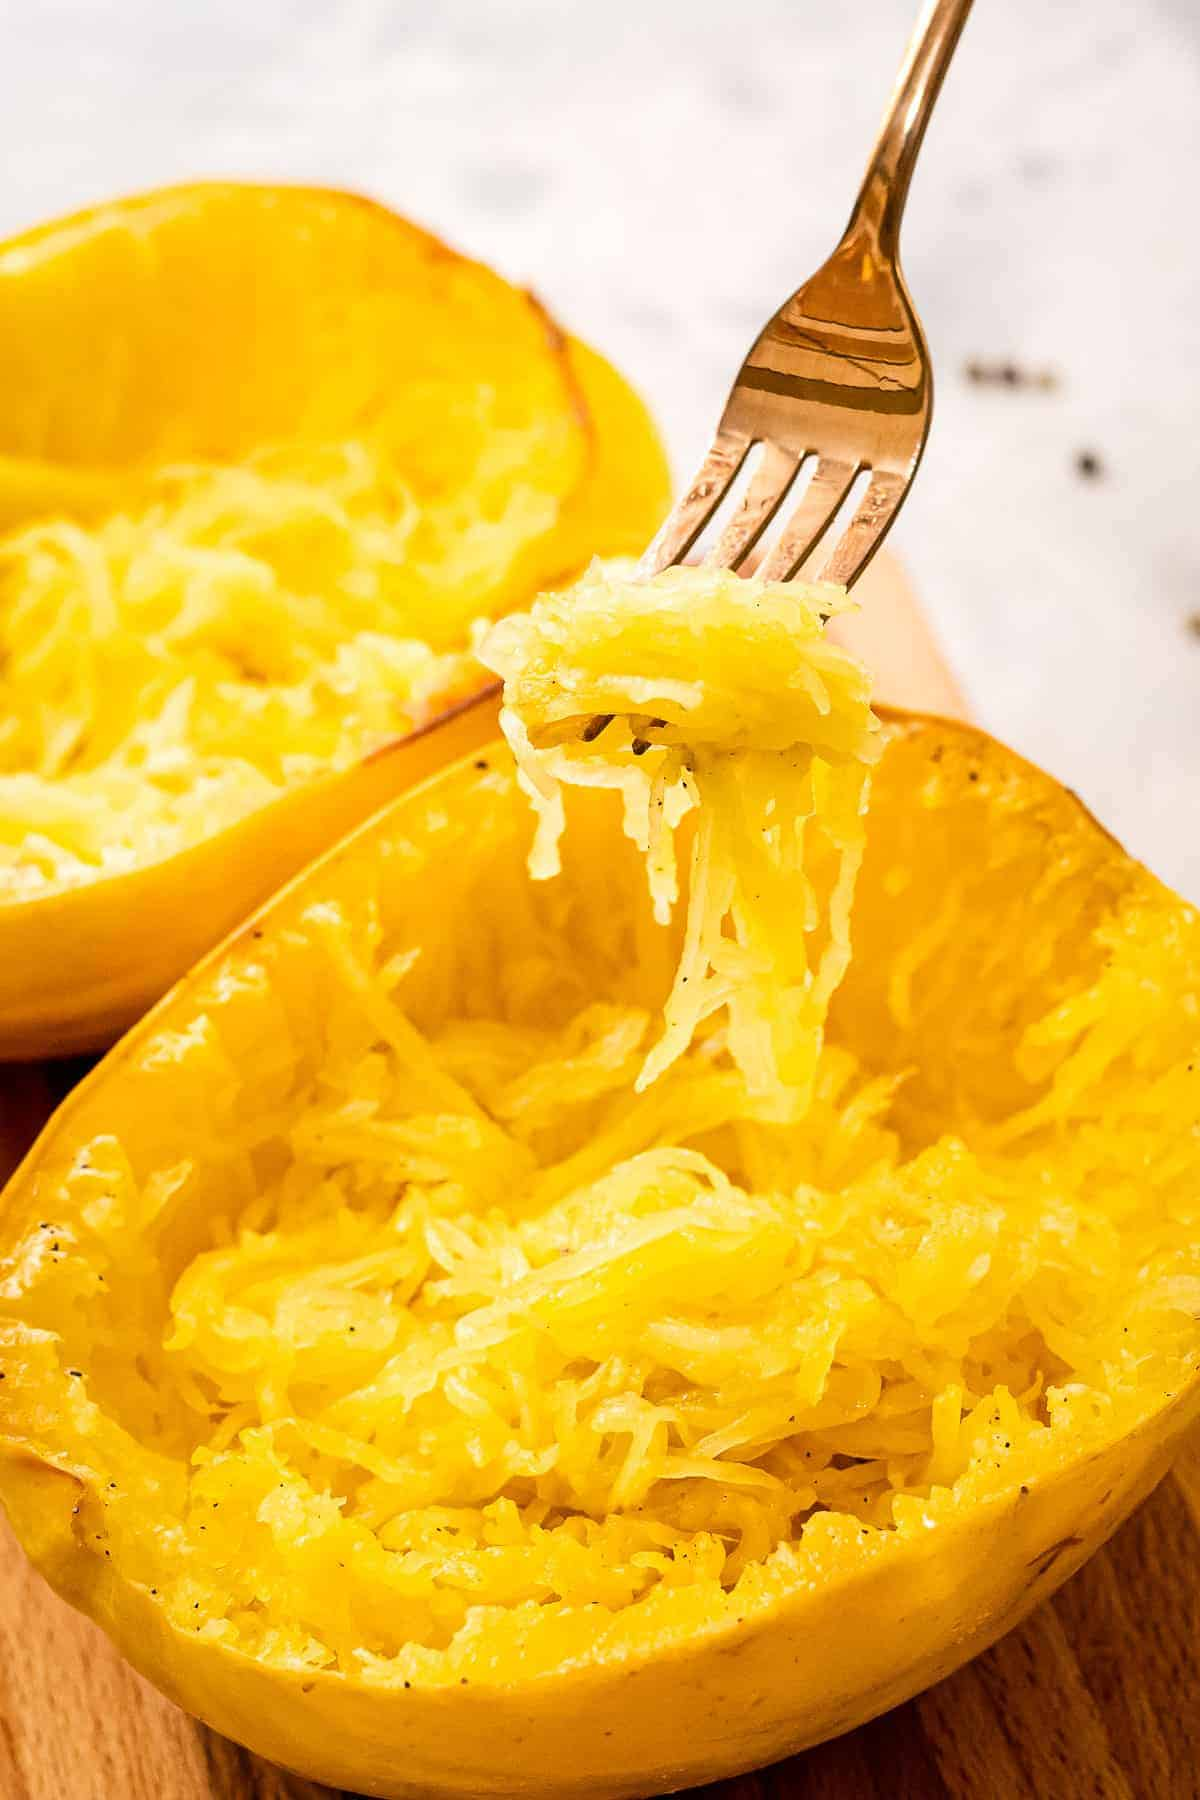 Fork with spaghetti squash on it